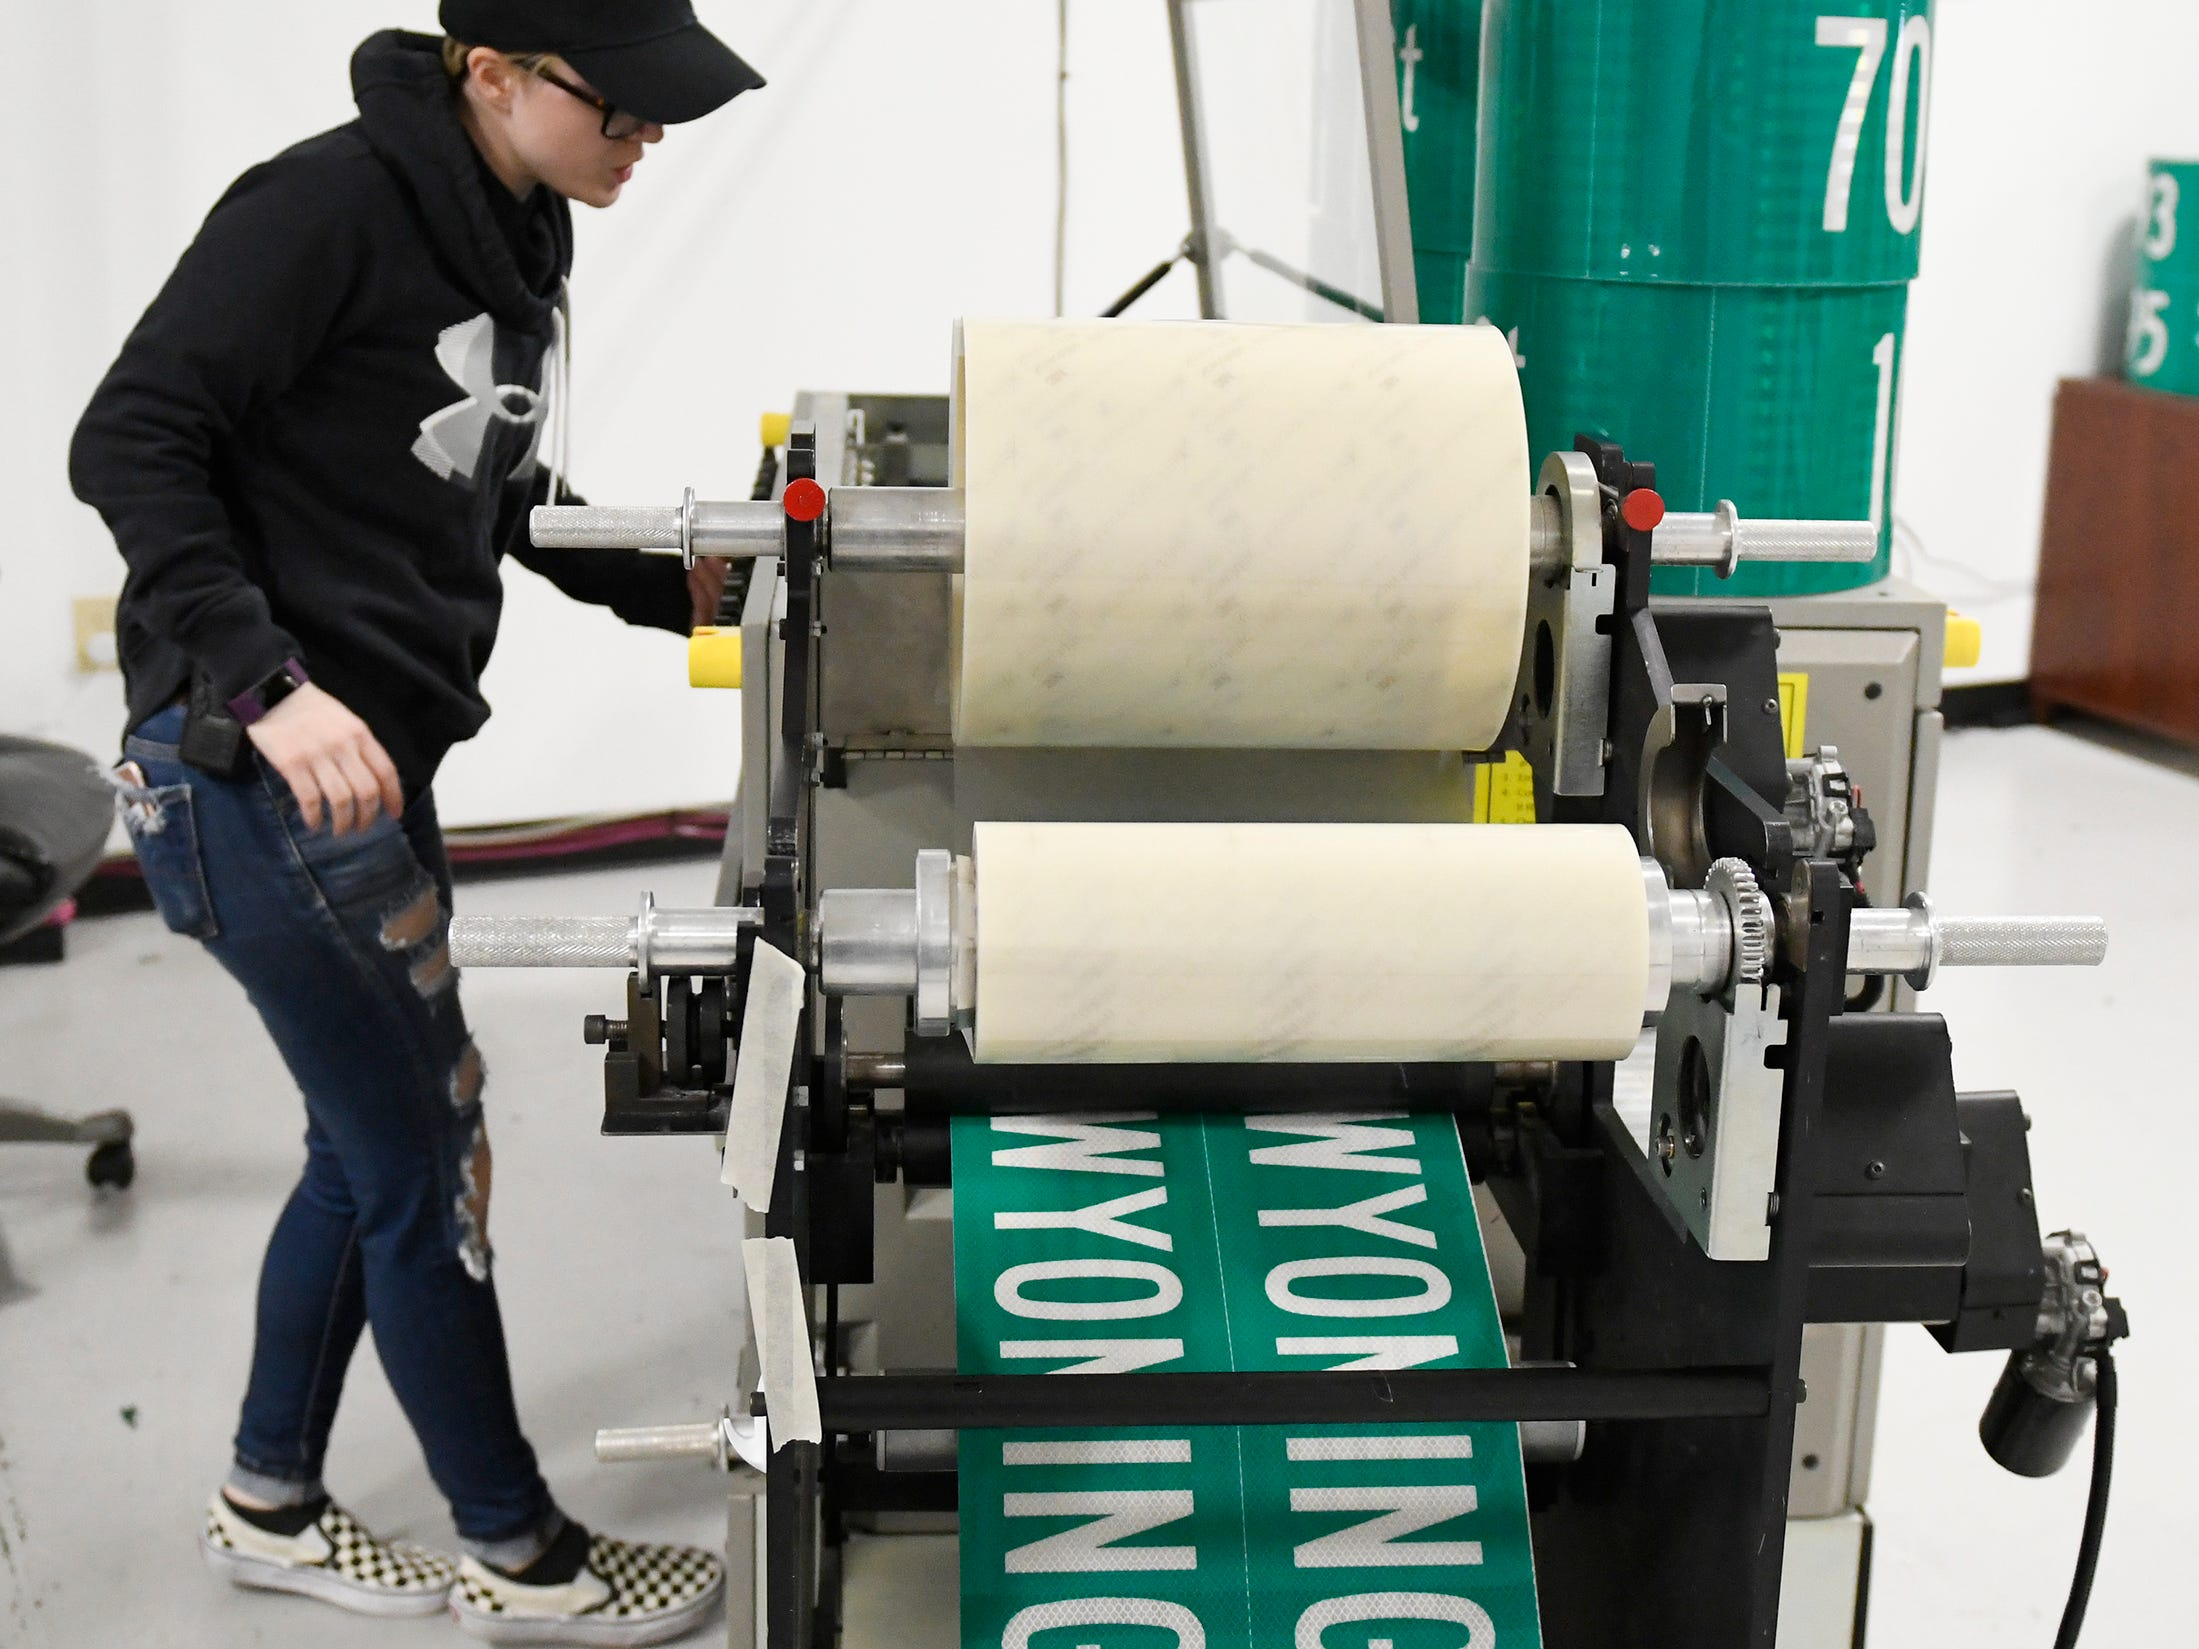 A Garden State Highway Products, Inc. employee operates one of the production machines at the 140,000 square foot facility in Millville on Tuesday, Mar. 12, 2019.